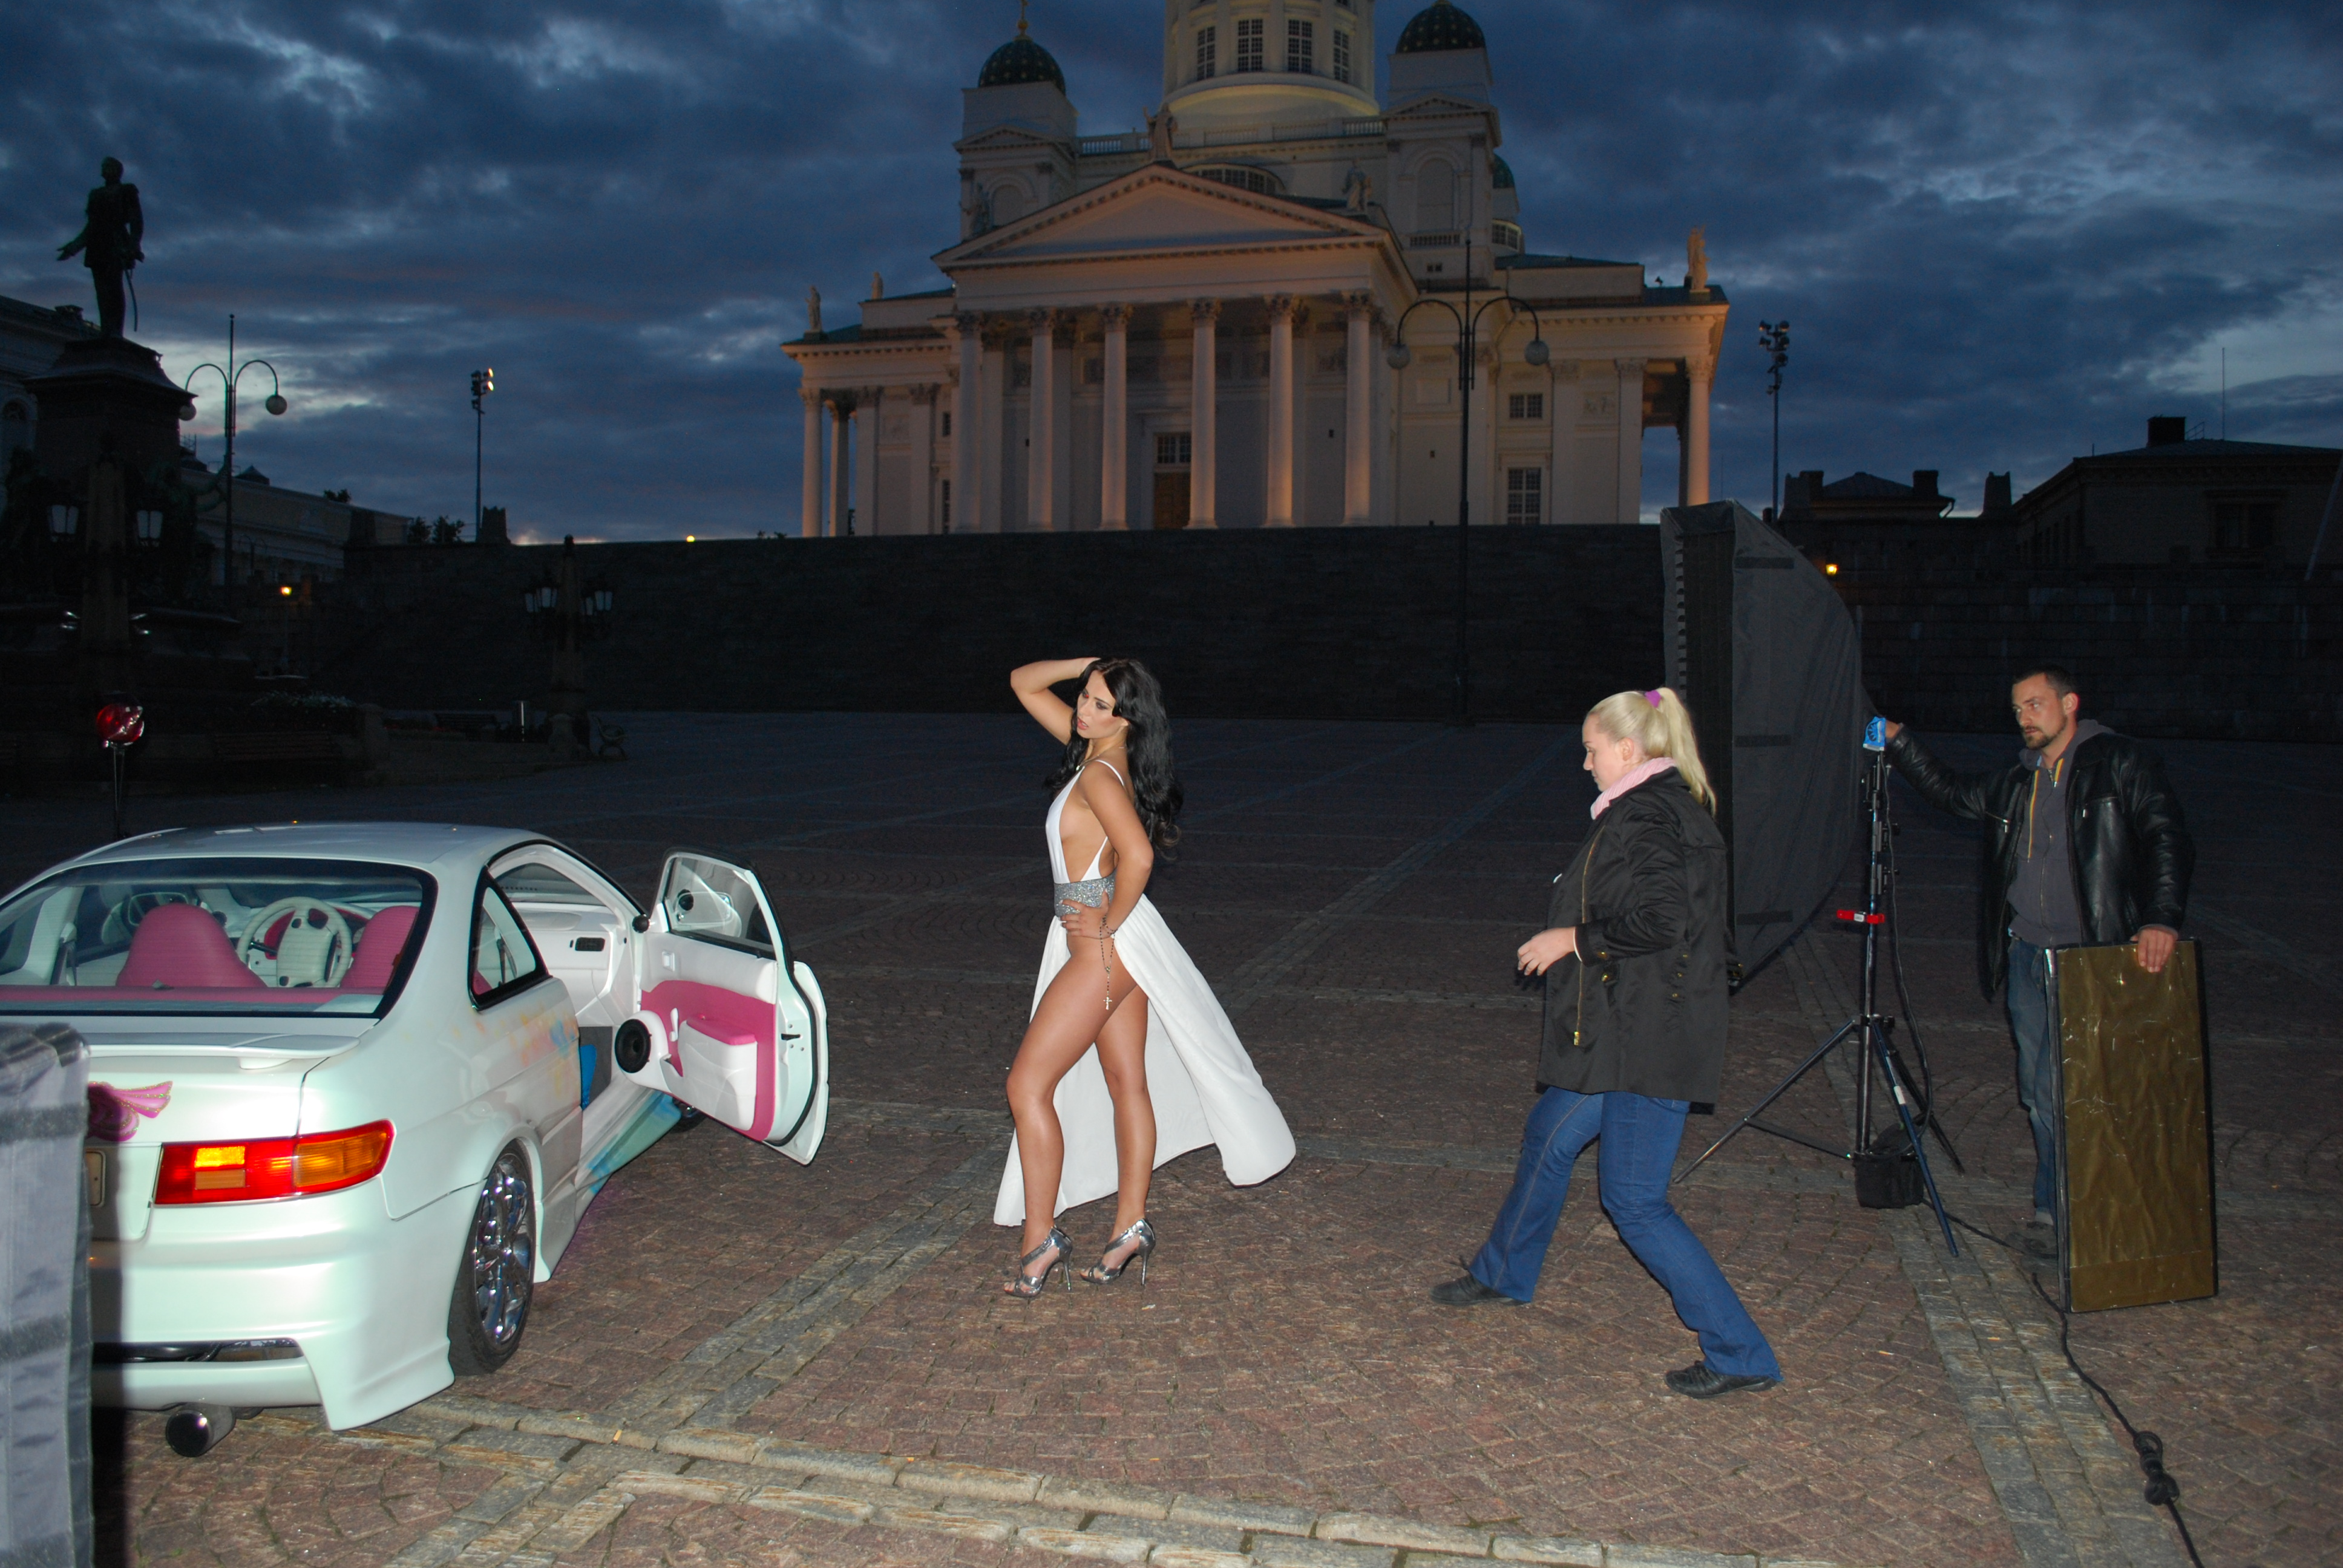 Miss Tuning 2012 Frizzi Arnold shooting the Miss Tuning Calendar in Finland with Tuning cars